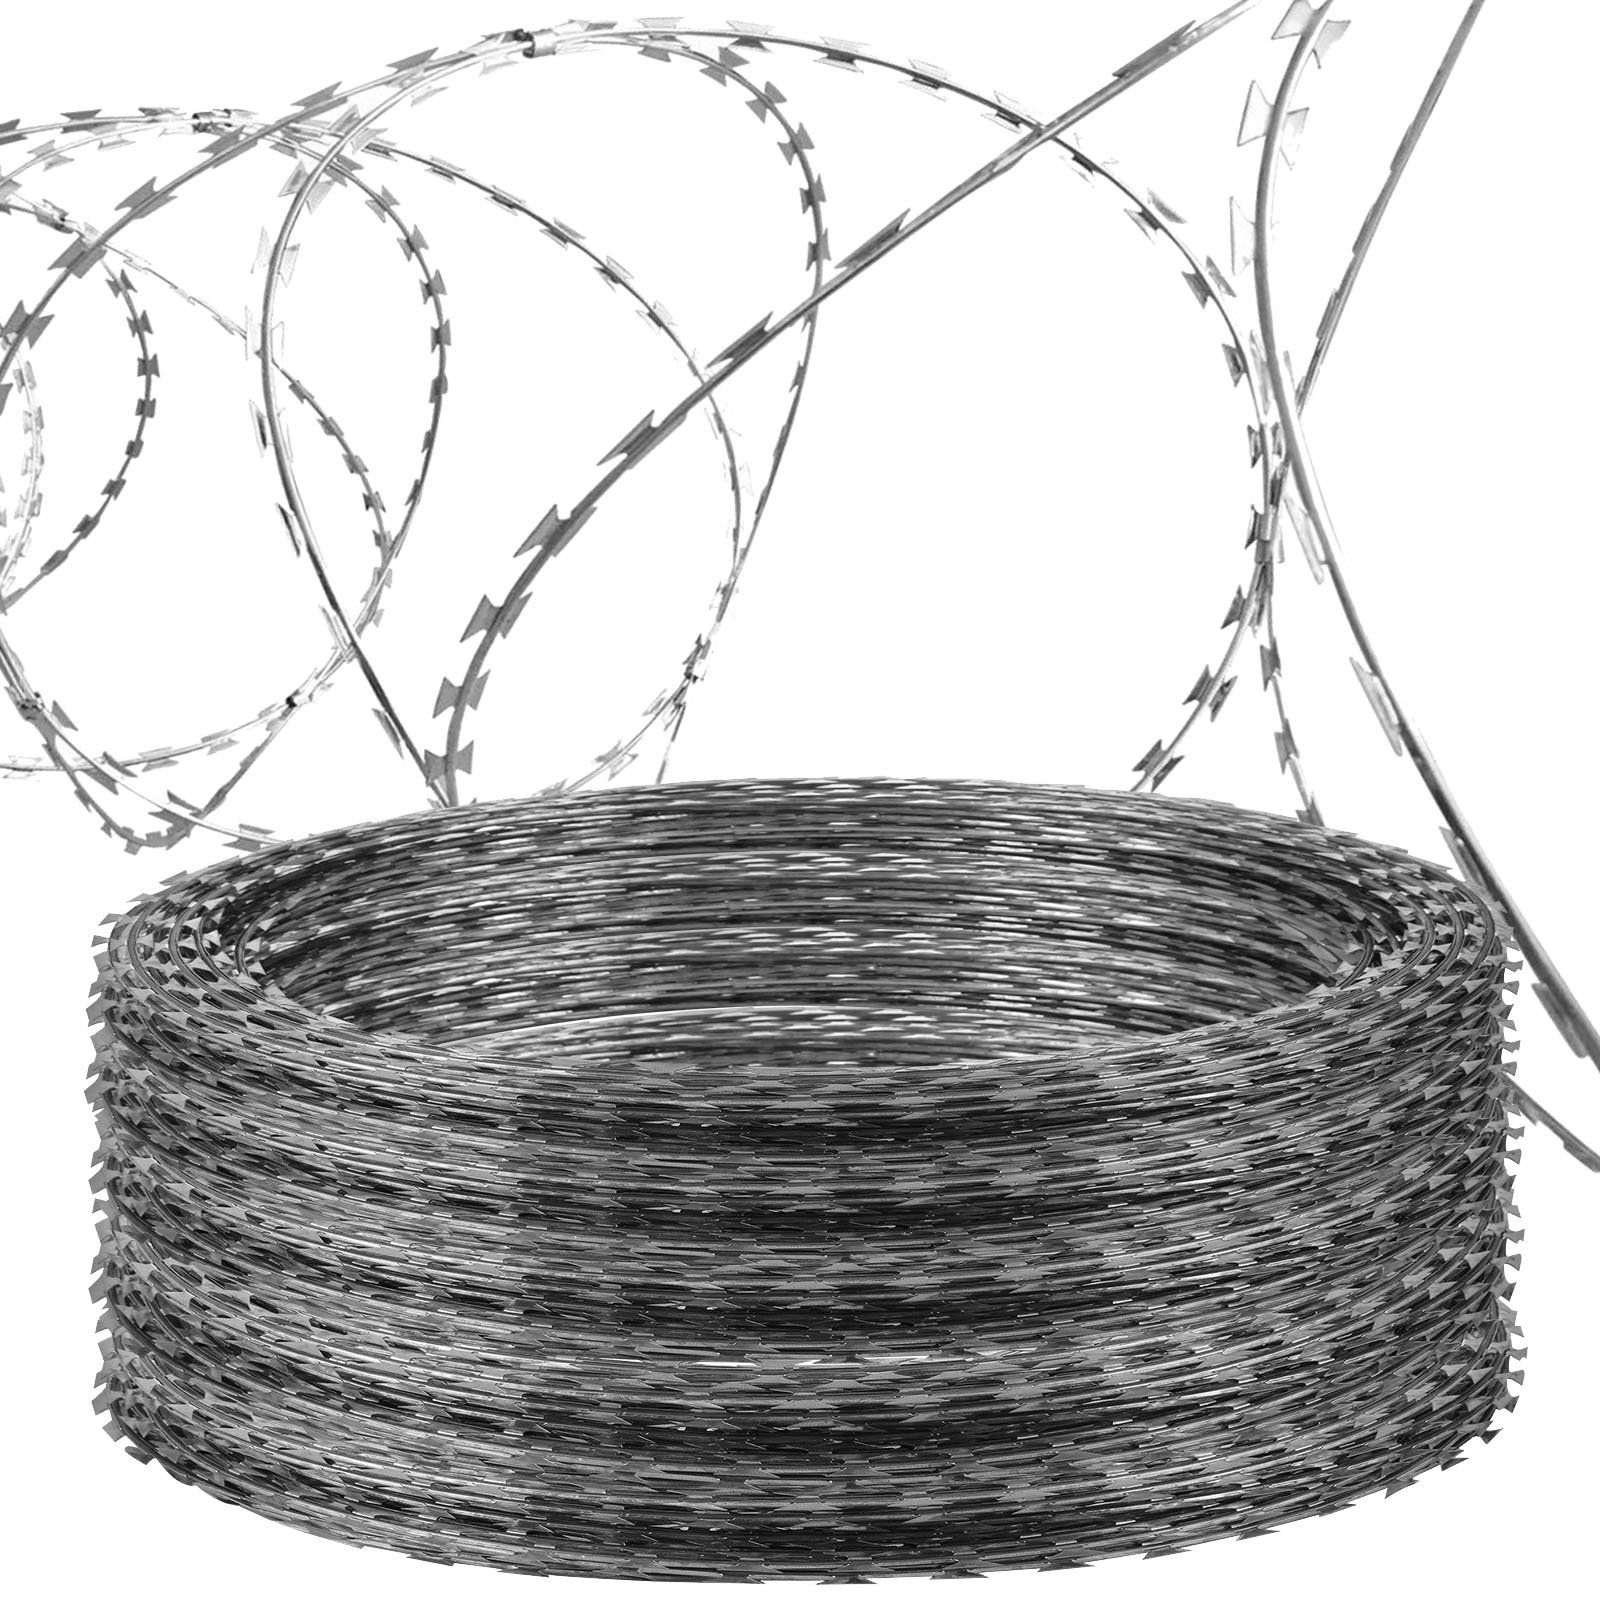 LOVSHARE 5 Rolls Razor Wire Each Coils 50 FT Ribbon Barbed 18'' Diameter Razor Ribbon Helical Barbed Wire